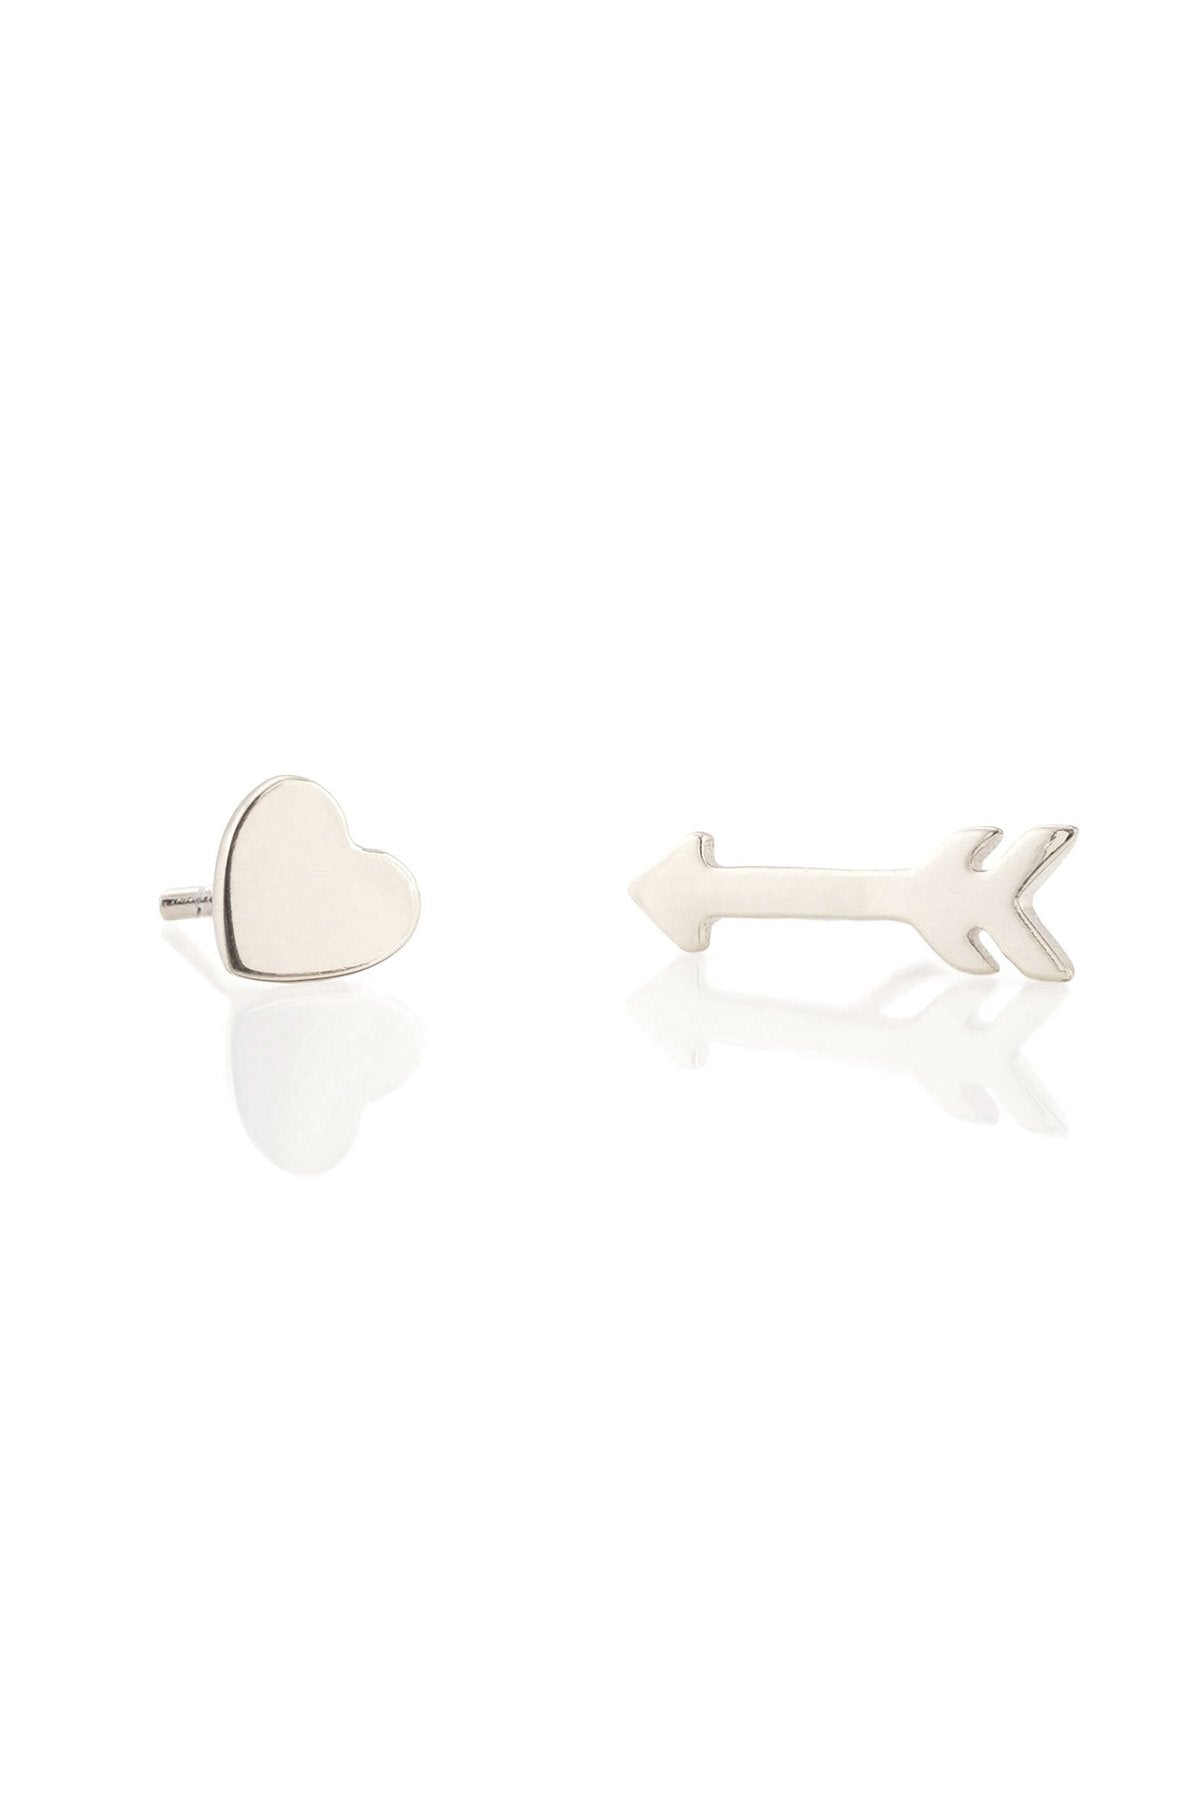 Kris Nations Heart and Arrow Stud Earrings in Sterling Silver